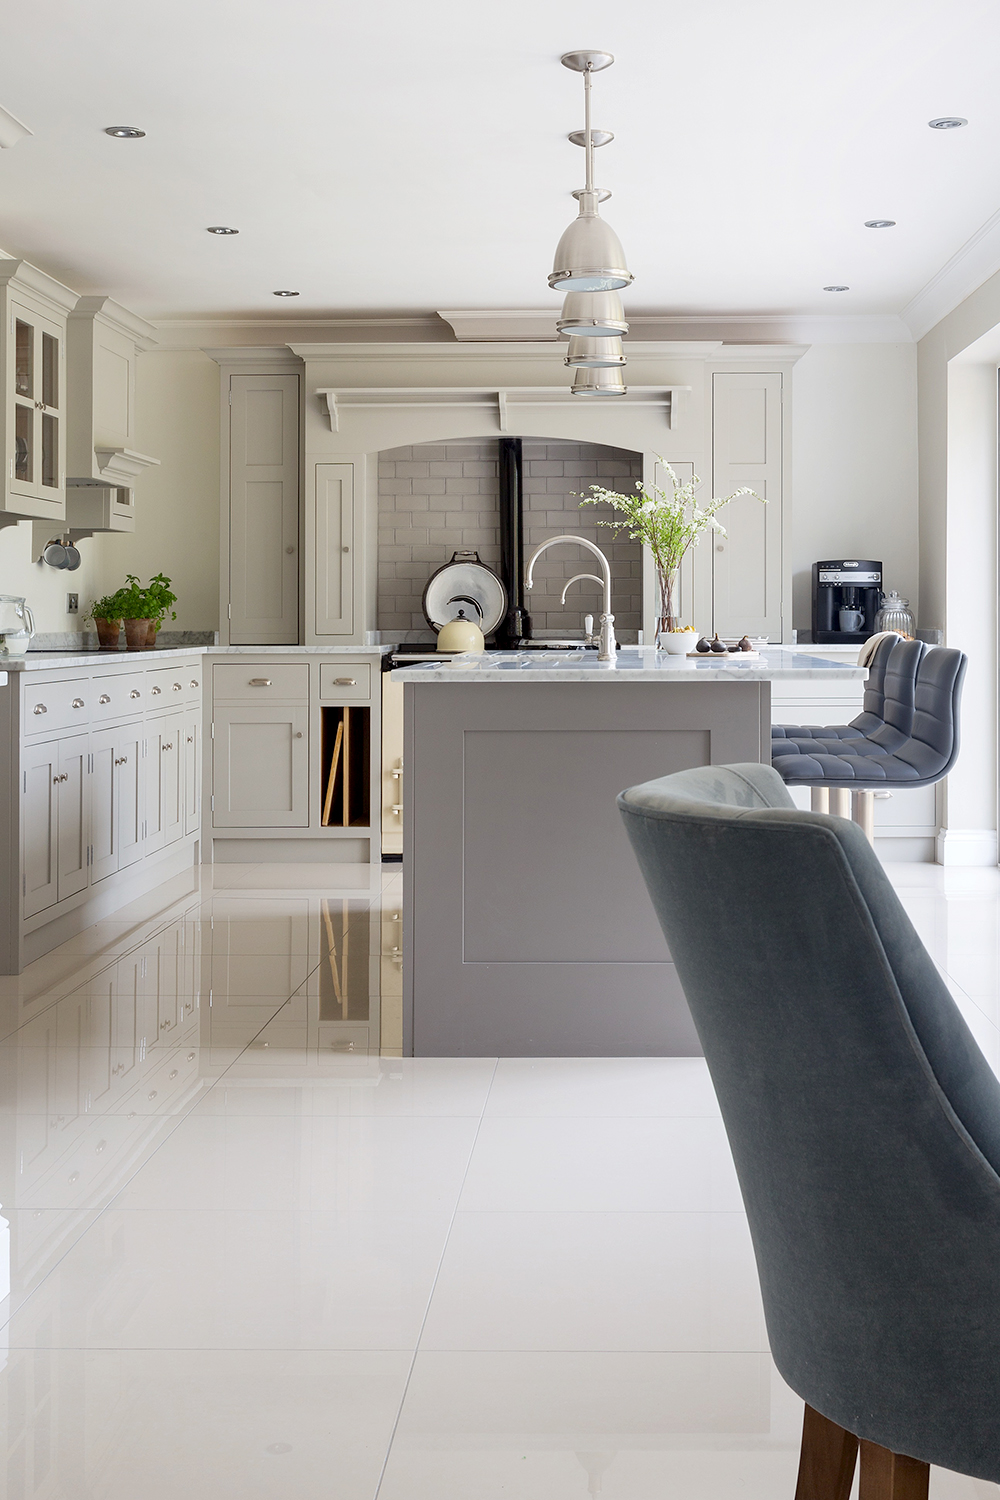 Bespoke grey Georgian classic kitchen with marble tops and large island with stools and a cream AGA.